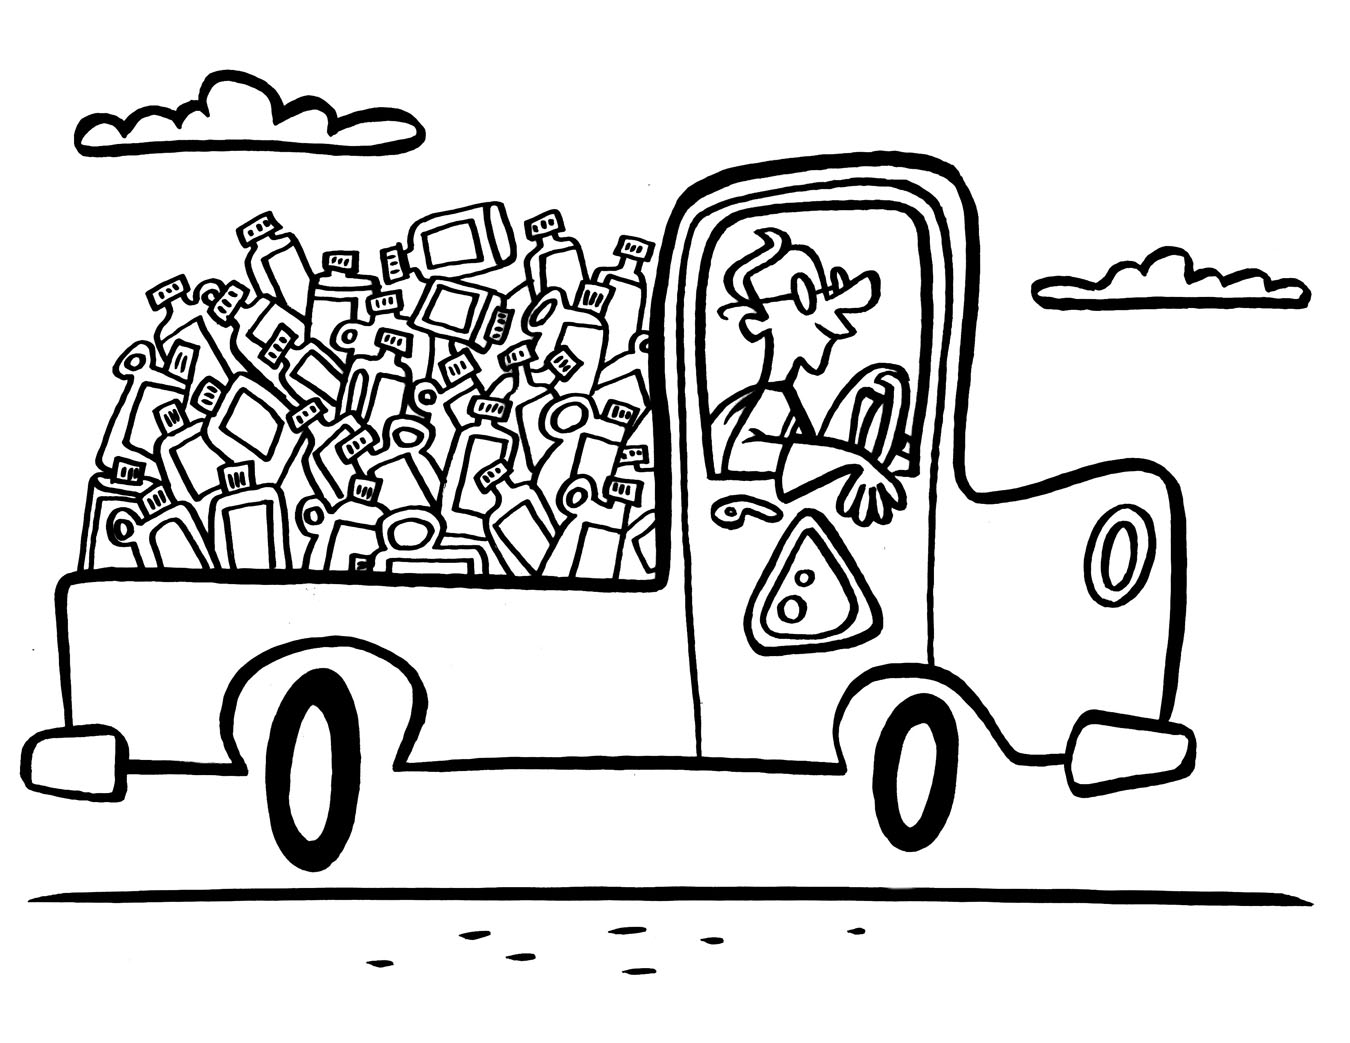 Reduce Reuse Recycle Coloring Pages, Recycle Coloring ...